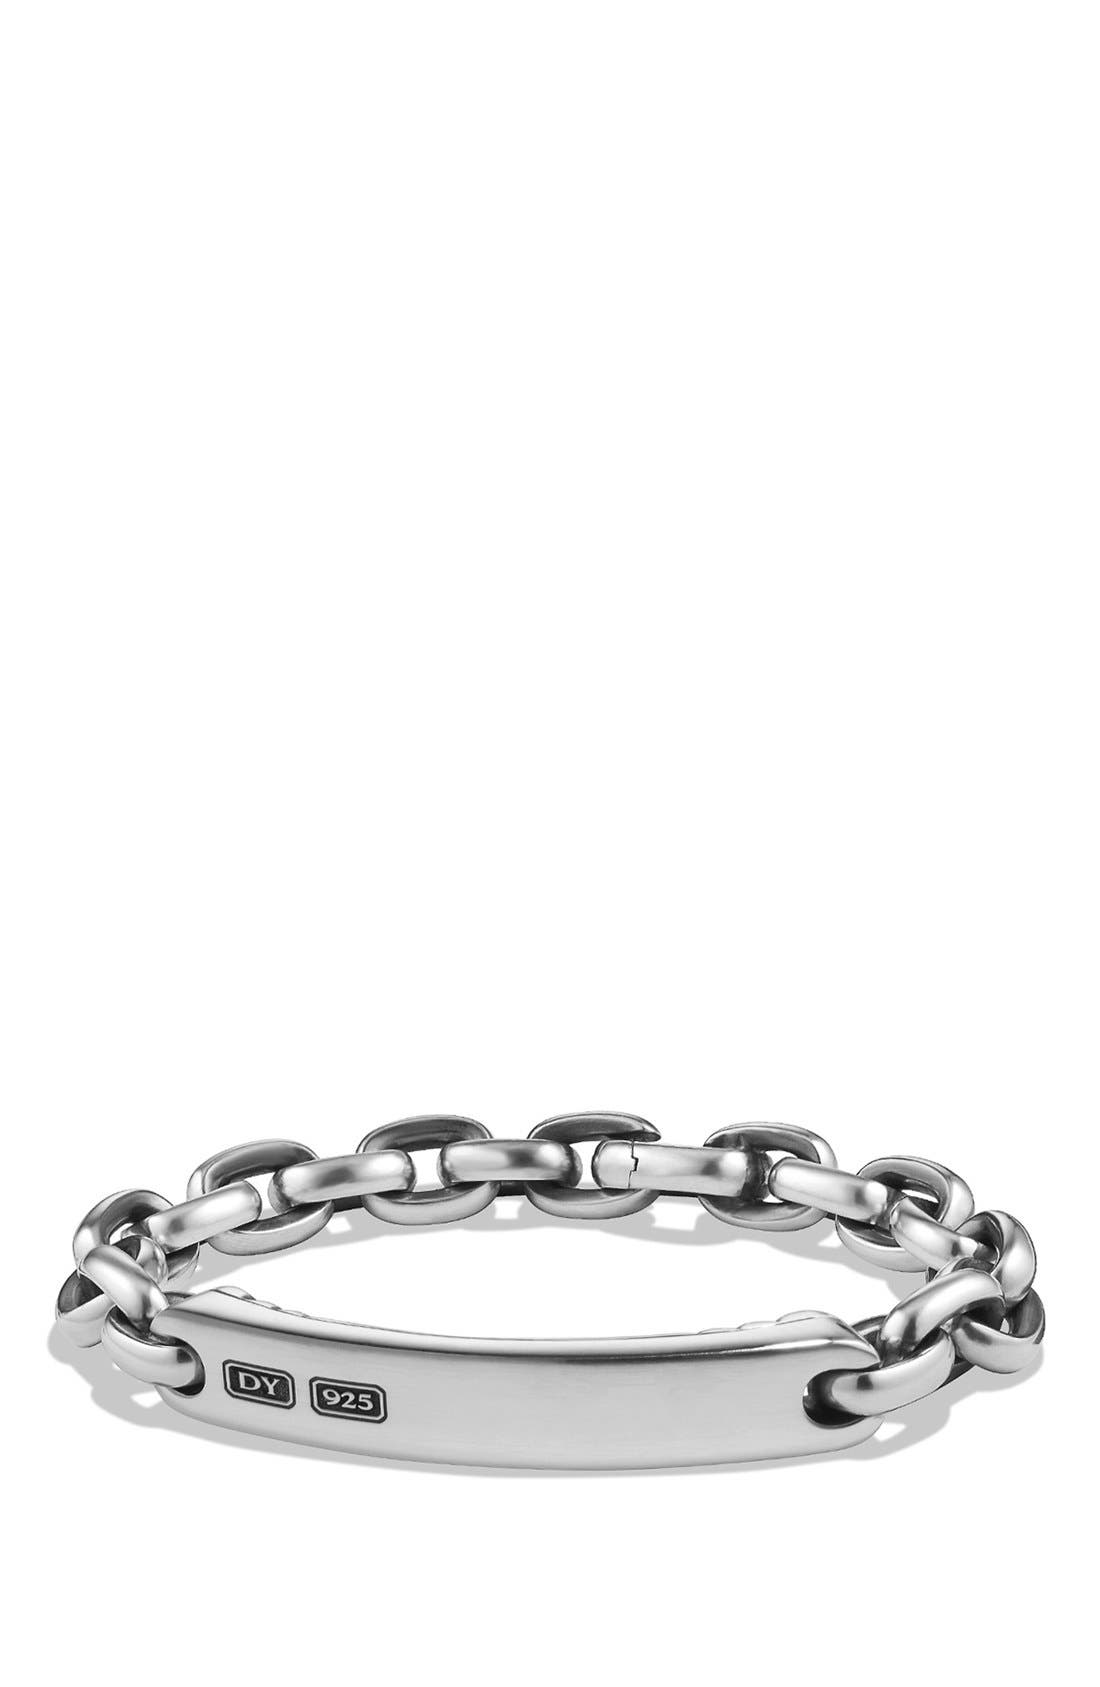 Alternate Image 1 Selected - David Yurman 'Streamline' ID Bracelet